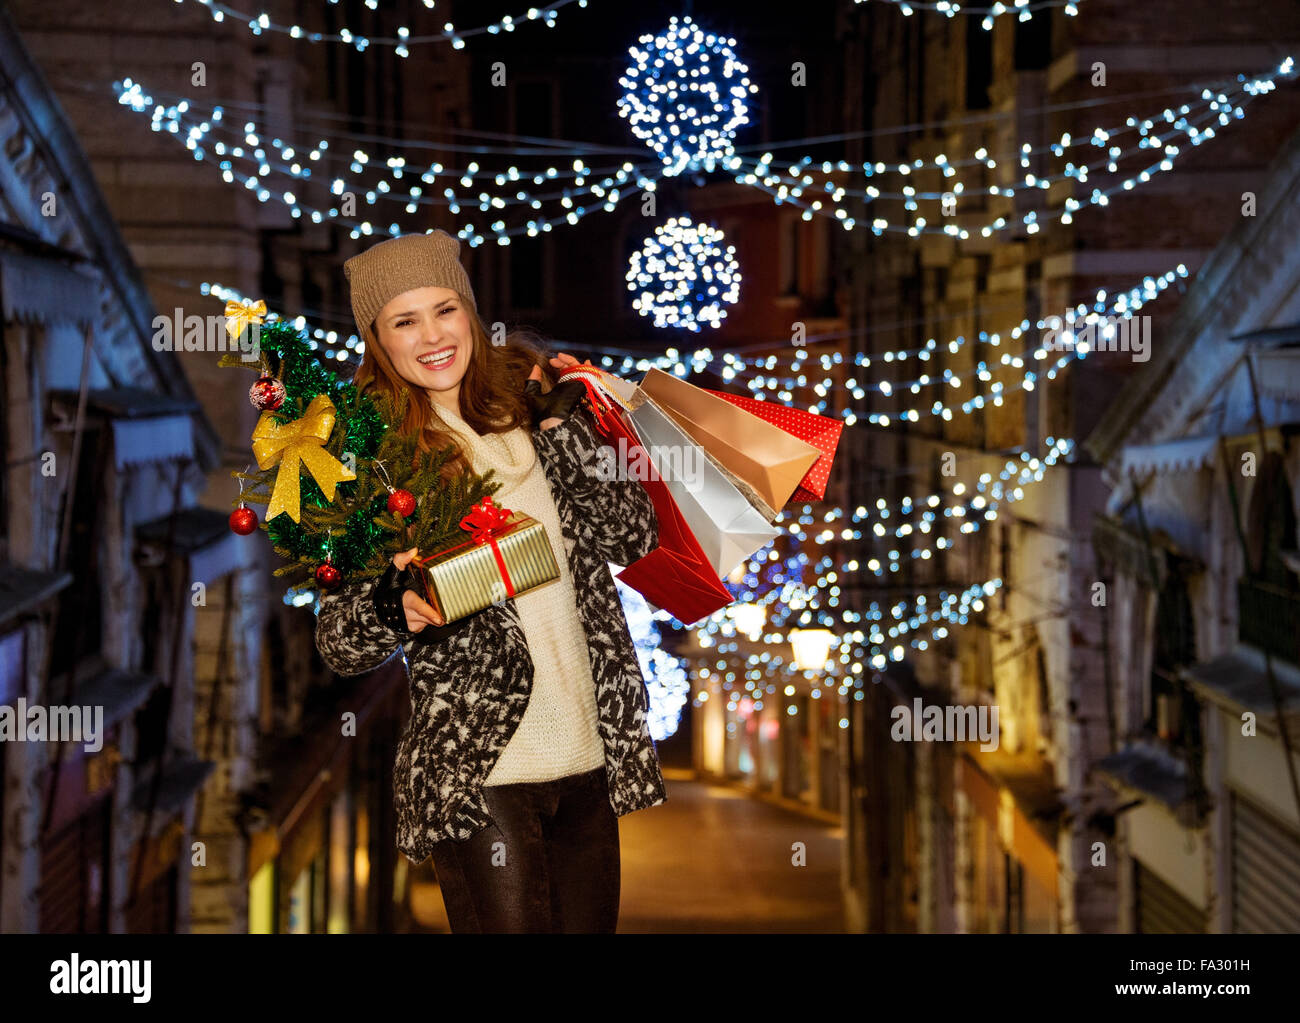 This Christmas is crushing on fashion forward shopping. Portrait of stylishly dressed smiling young woman holding - Stock Image